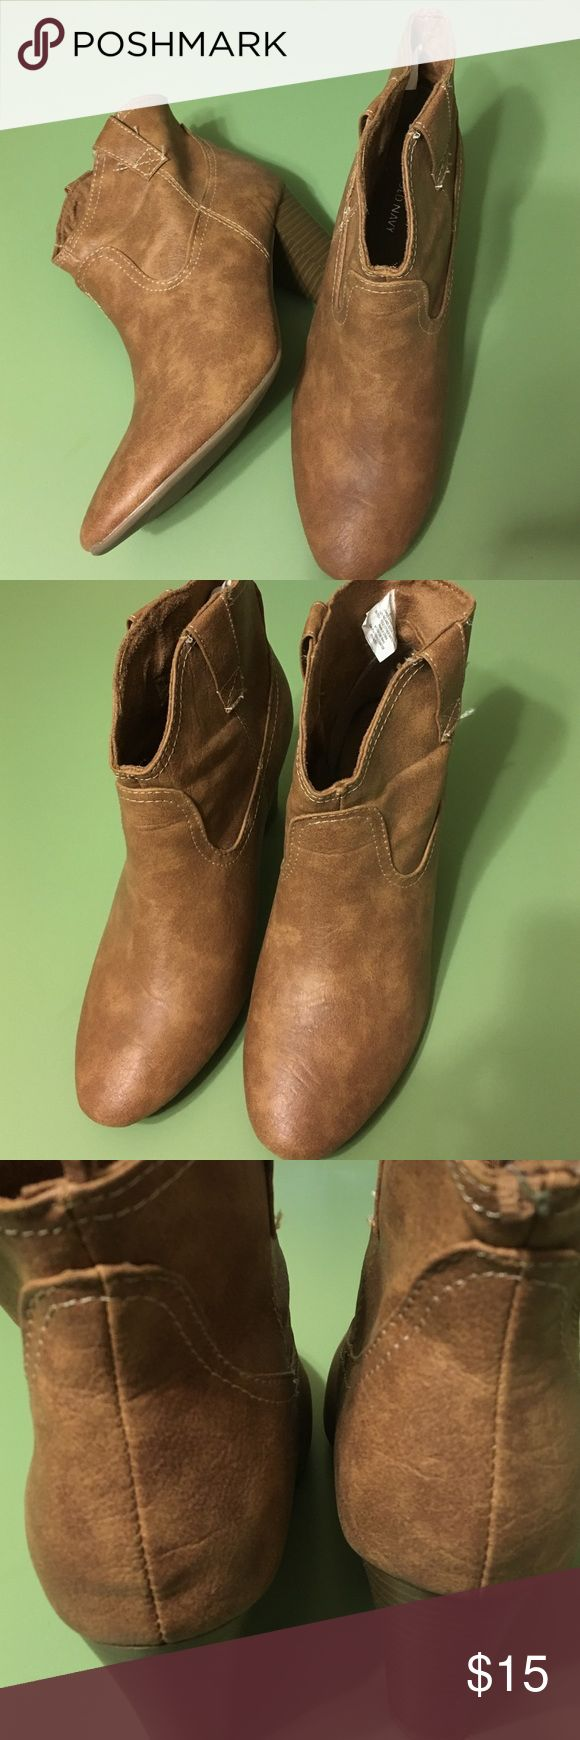 """Old Navy Ankle Boot 8 Old Navy Ankle Boot with stacked heel size 8. Lightly worn. No damage. Not real leather. Heel height 3"""". Old Navy Shoes Ankle Boots & Booties"""